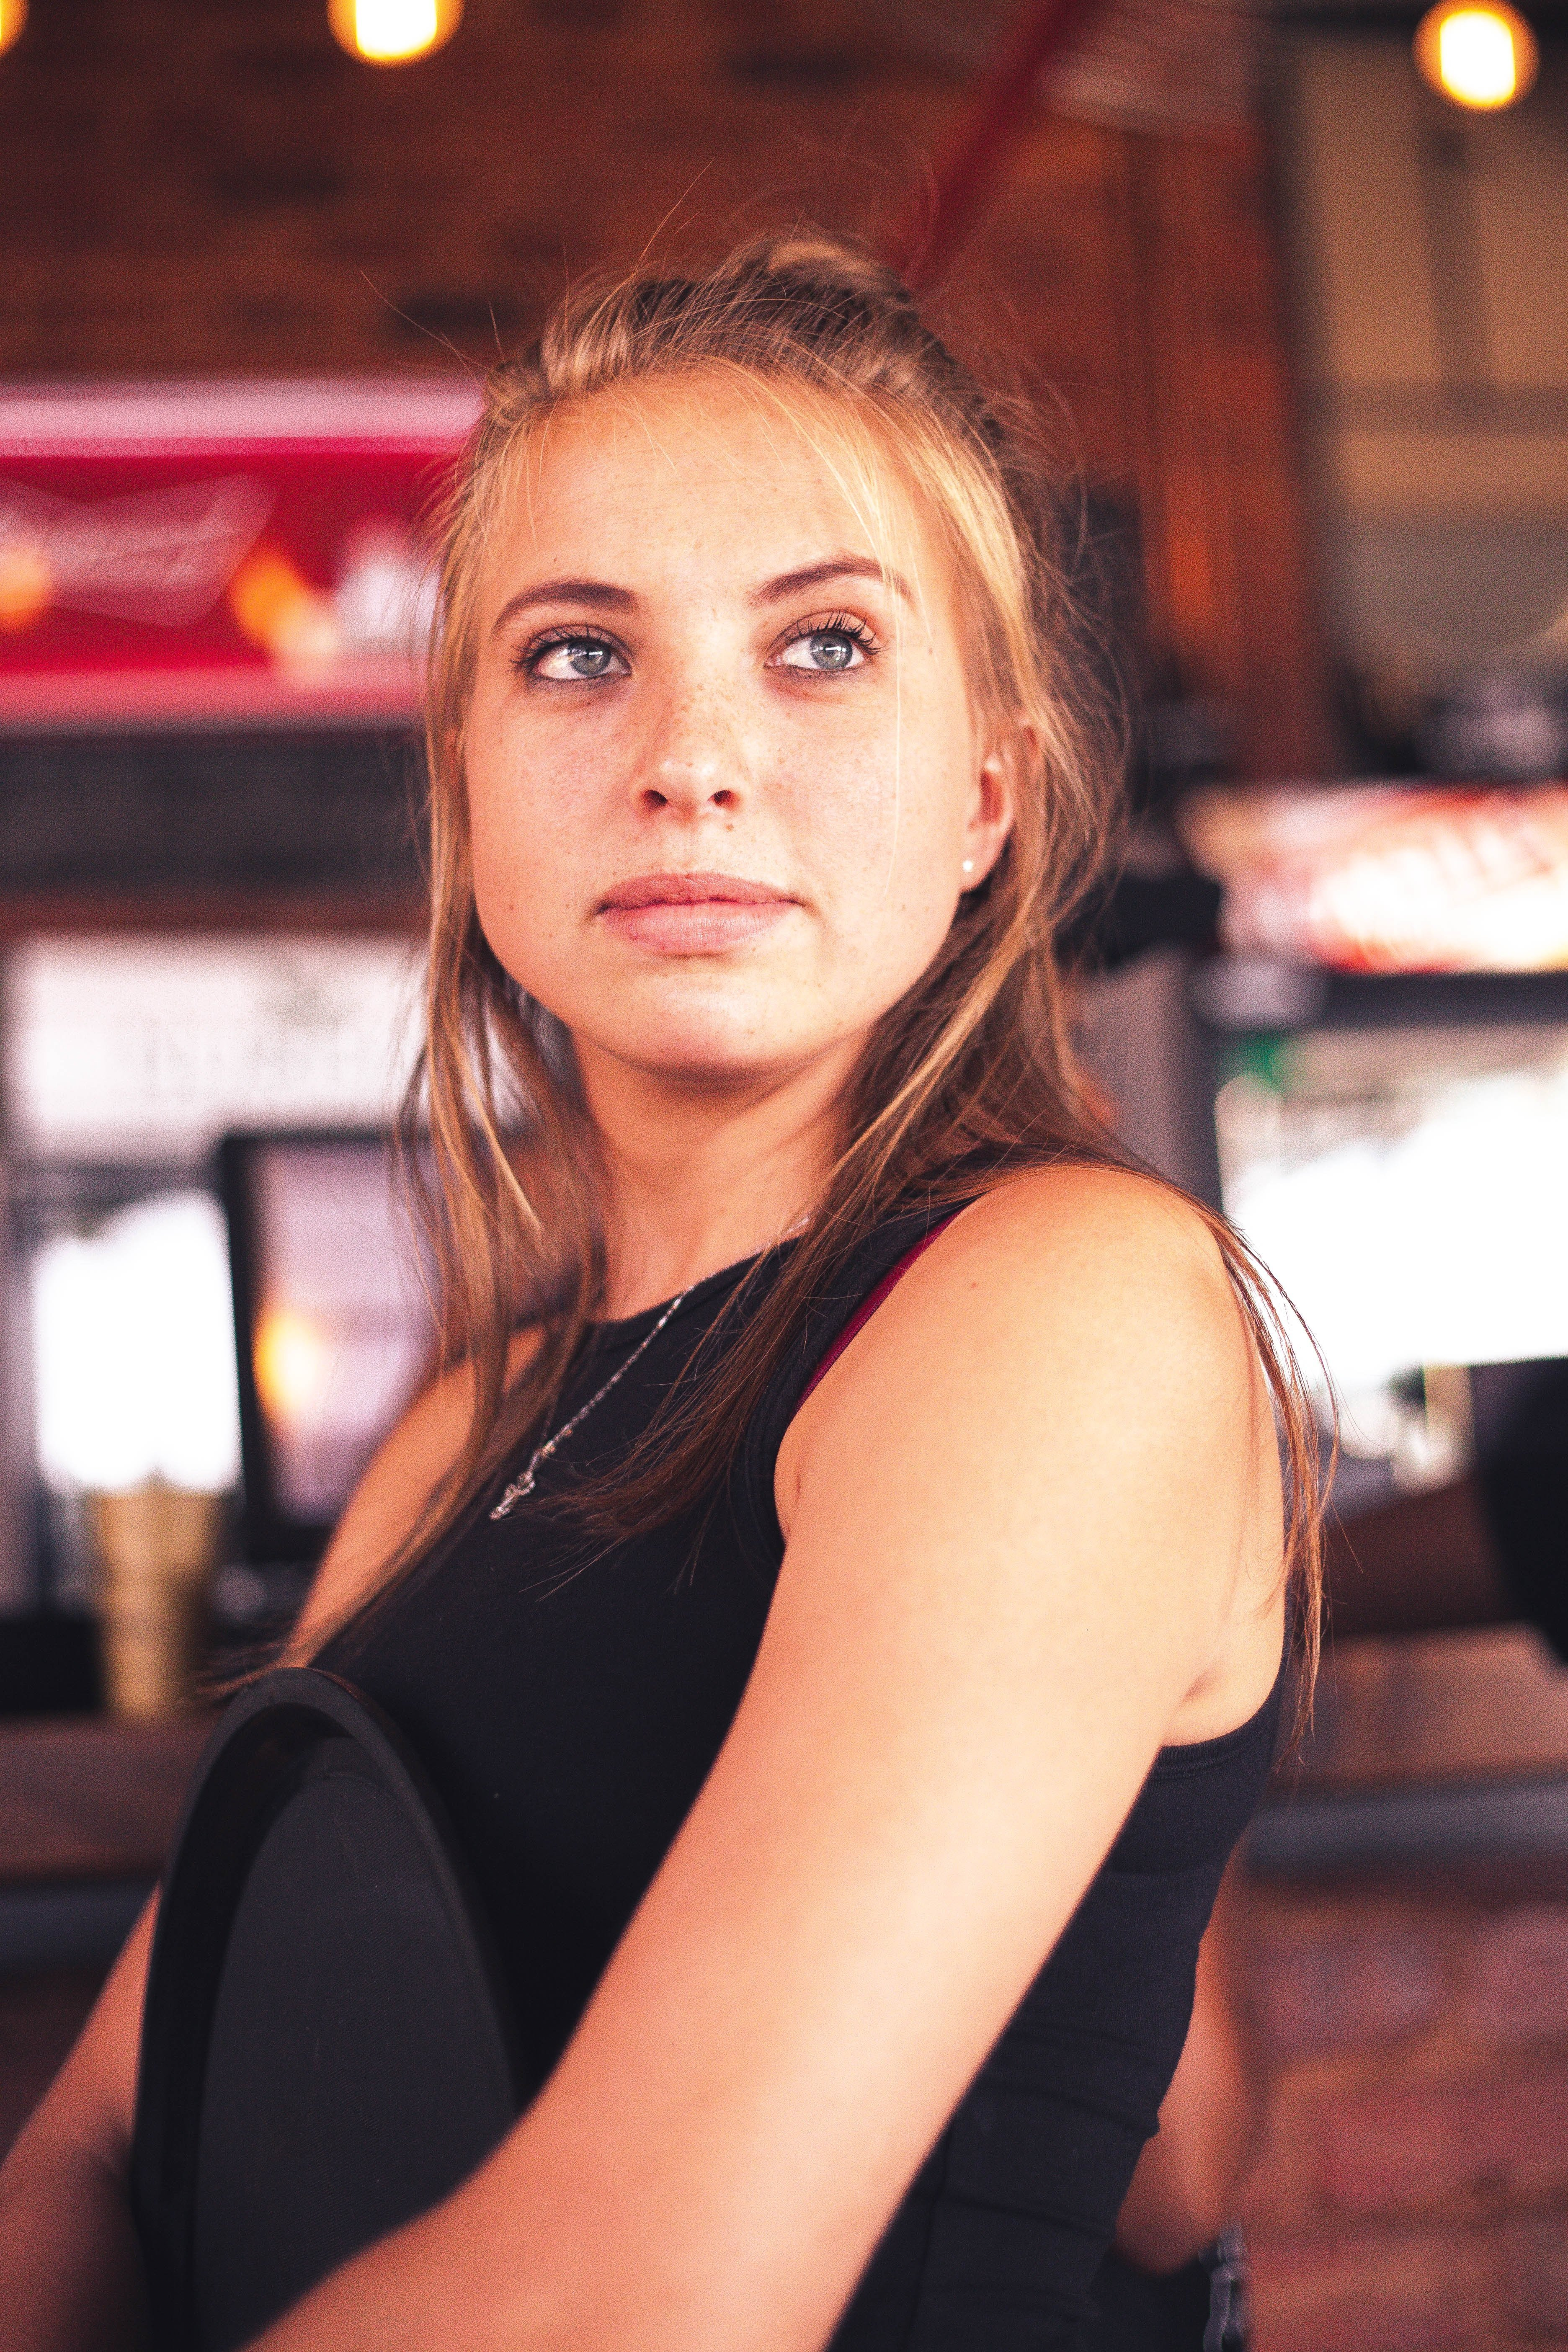 A waitress in a restaurant. | Source: Unsplash